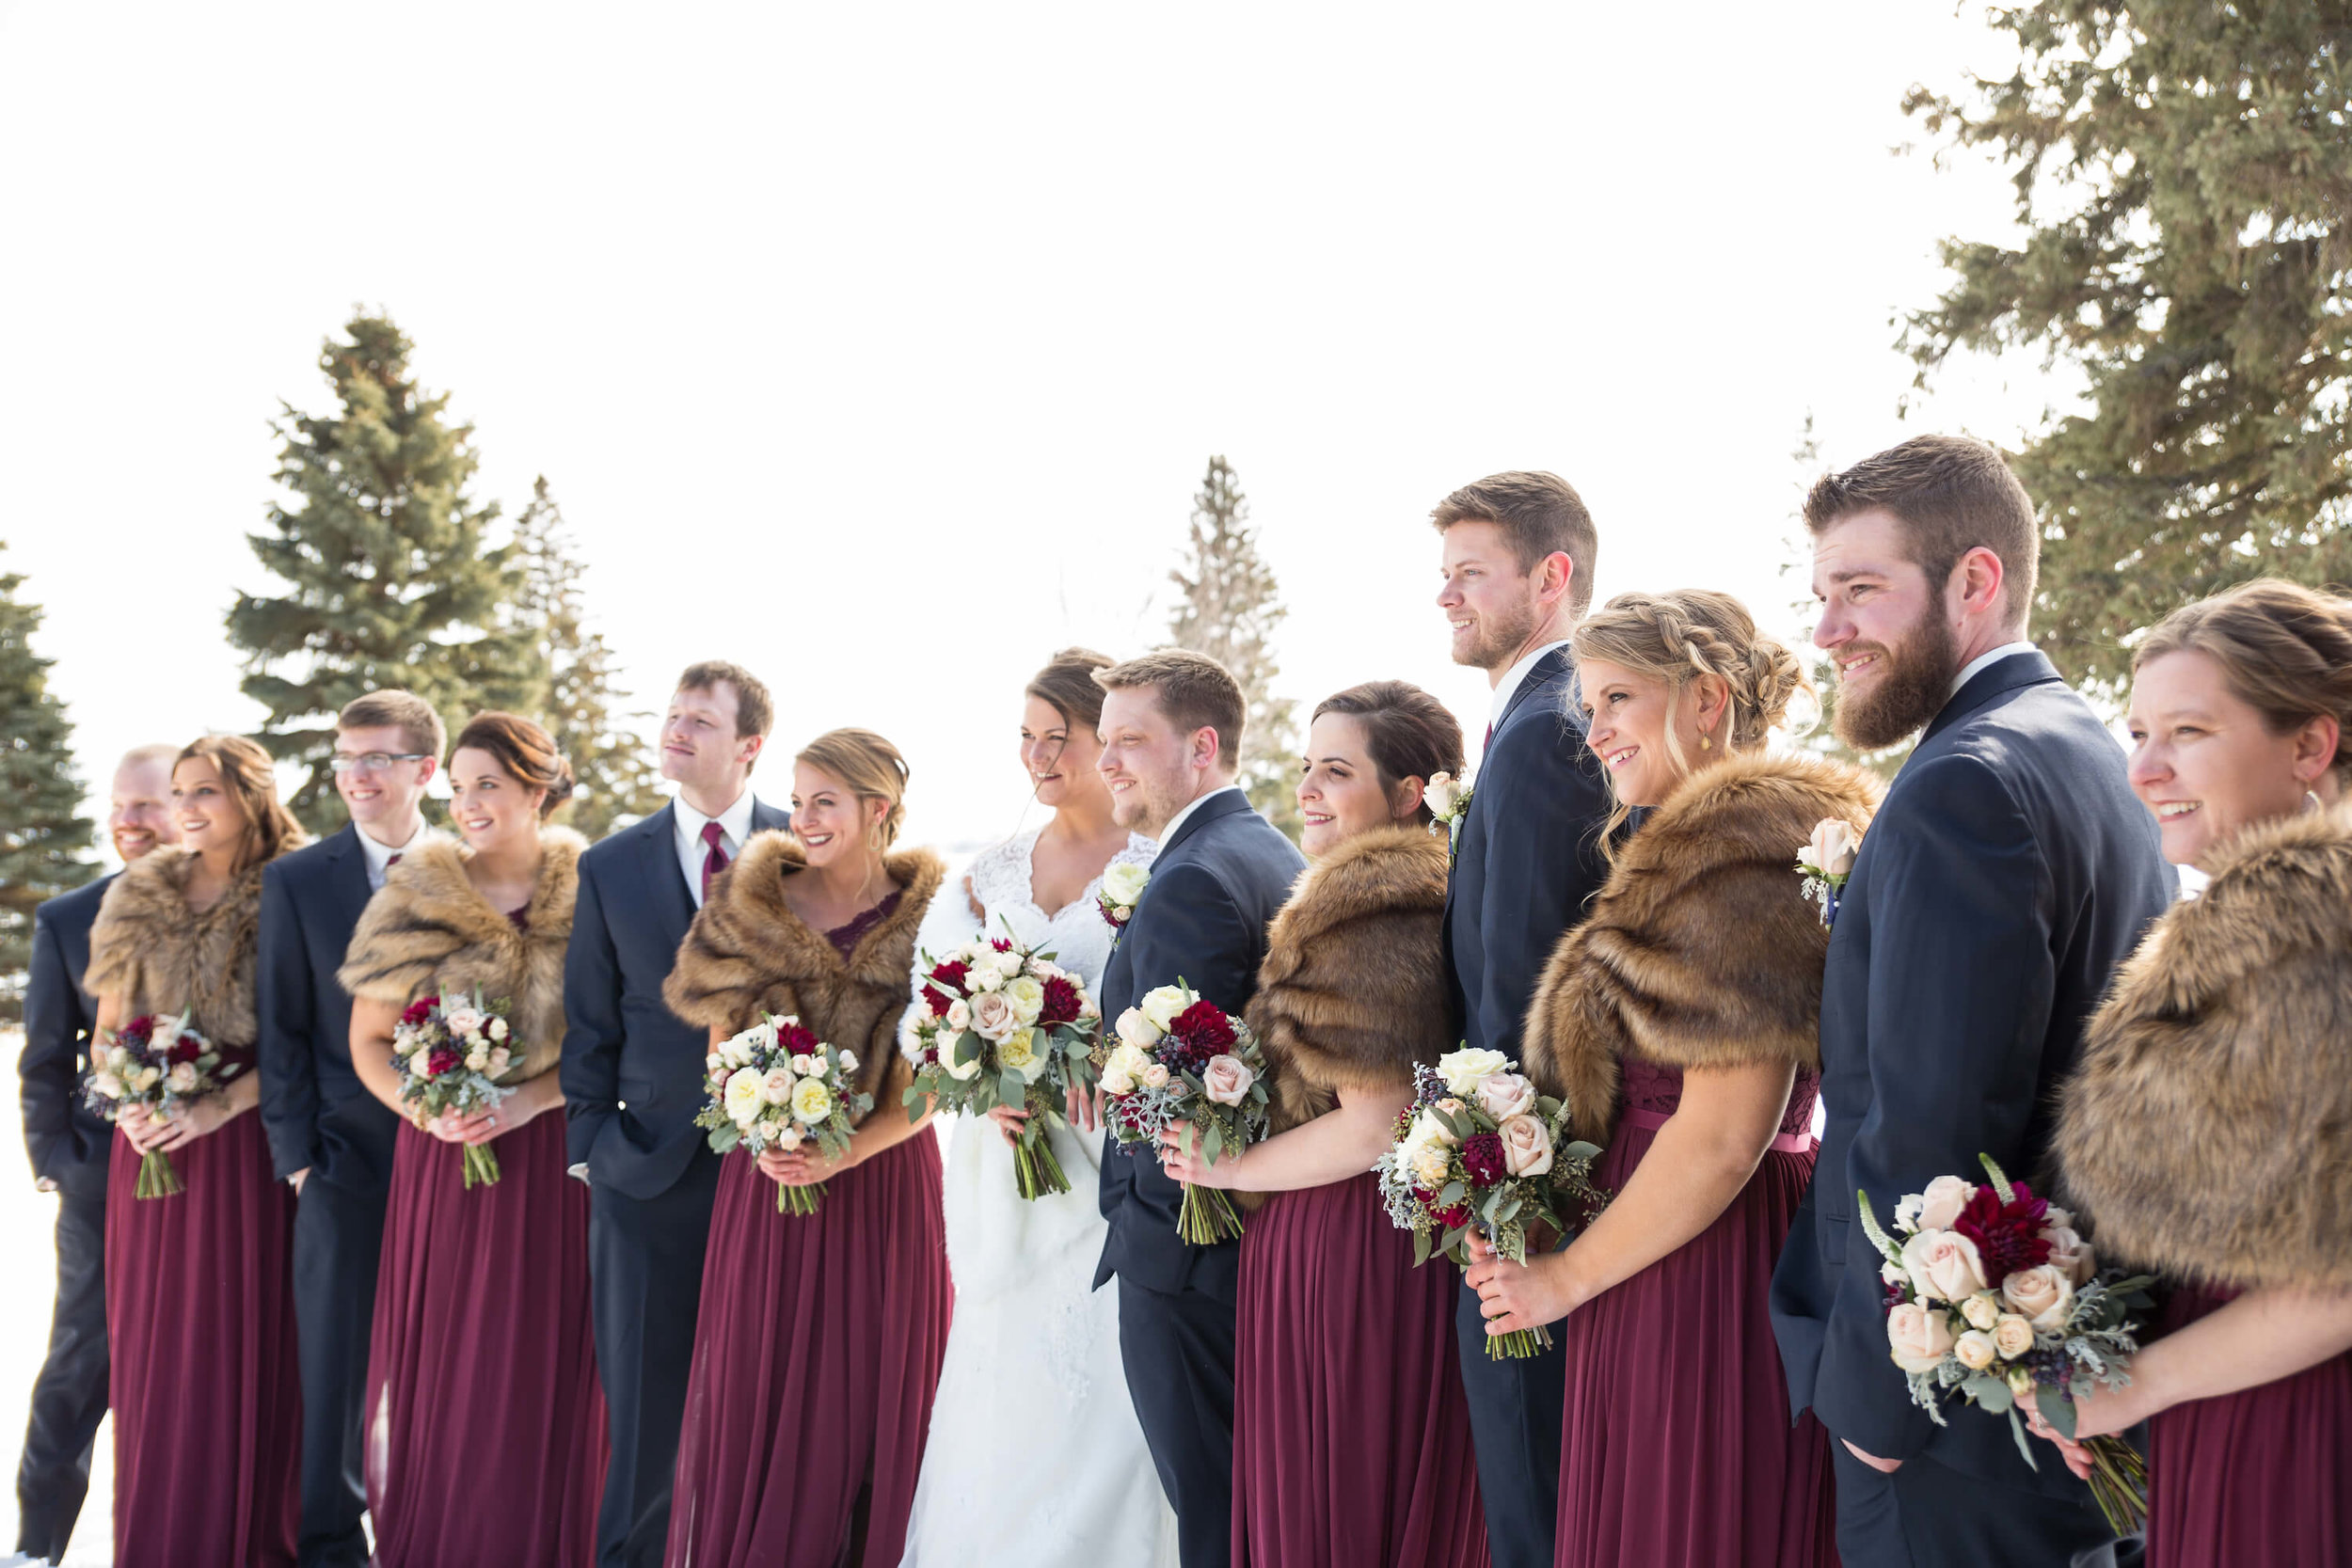 51Photographer: Nicki Lynn | Venue: Glenhaven Wedding winter wedding | indoor ceremony.jpg